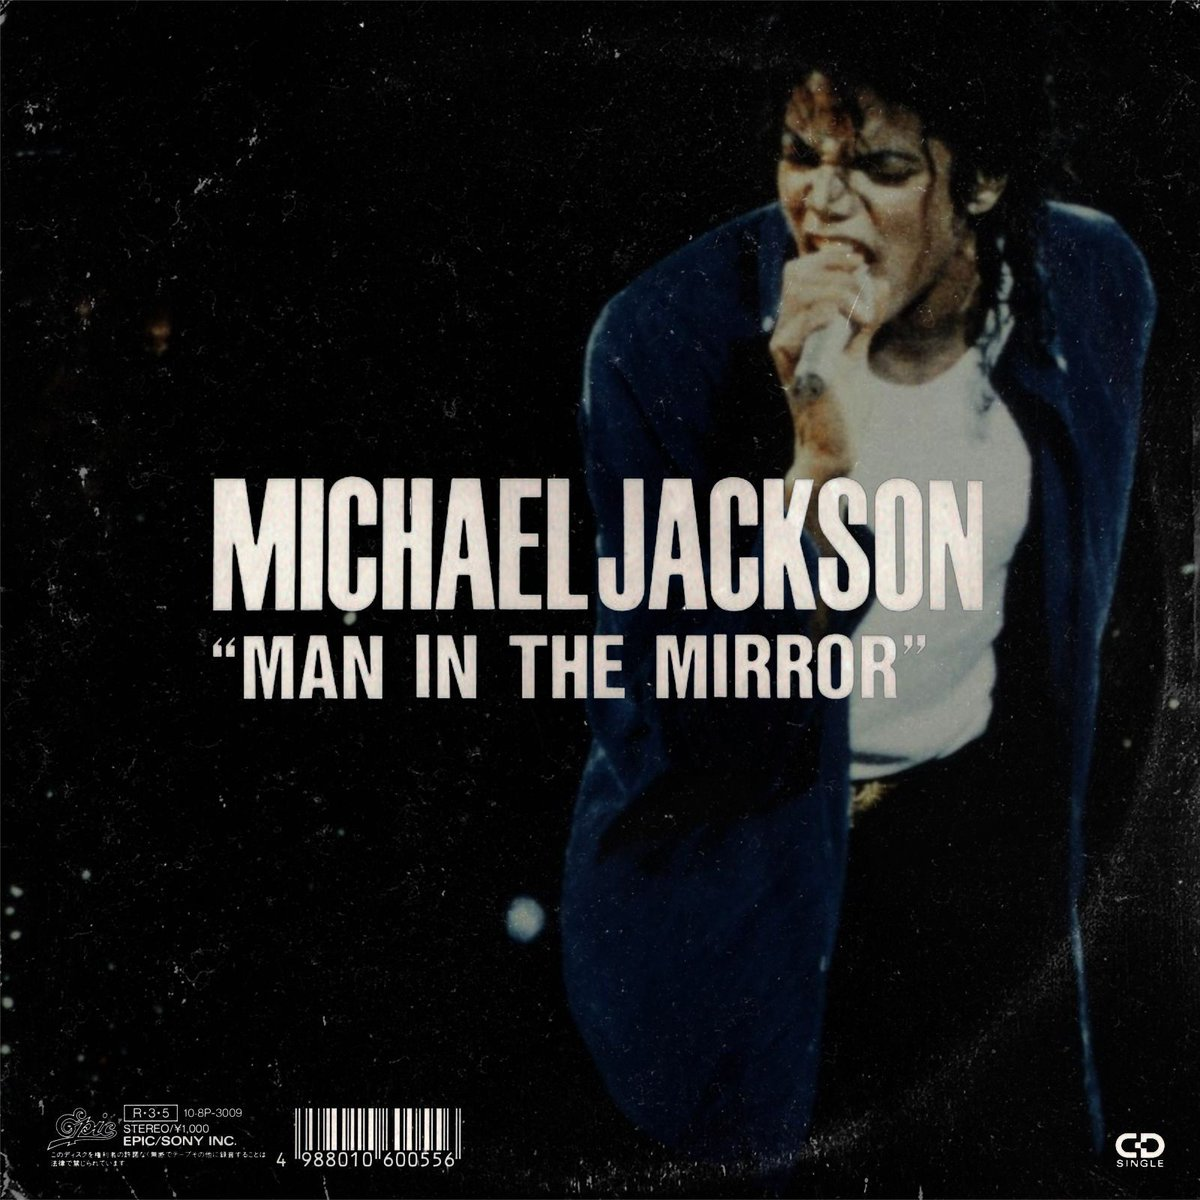 Starting #MakeADifferenceDay with Michael Jackson's Man In The Mirror(1988). The song is about making a change but in order to do so you have to start with looking at yourself. Image thanks to Reddit #selfreflection #changing #mirrors #selfgrowth #GDR https://t.co/yvVTiQ4ZCD